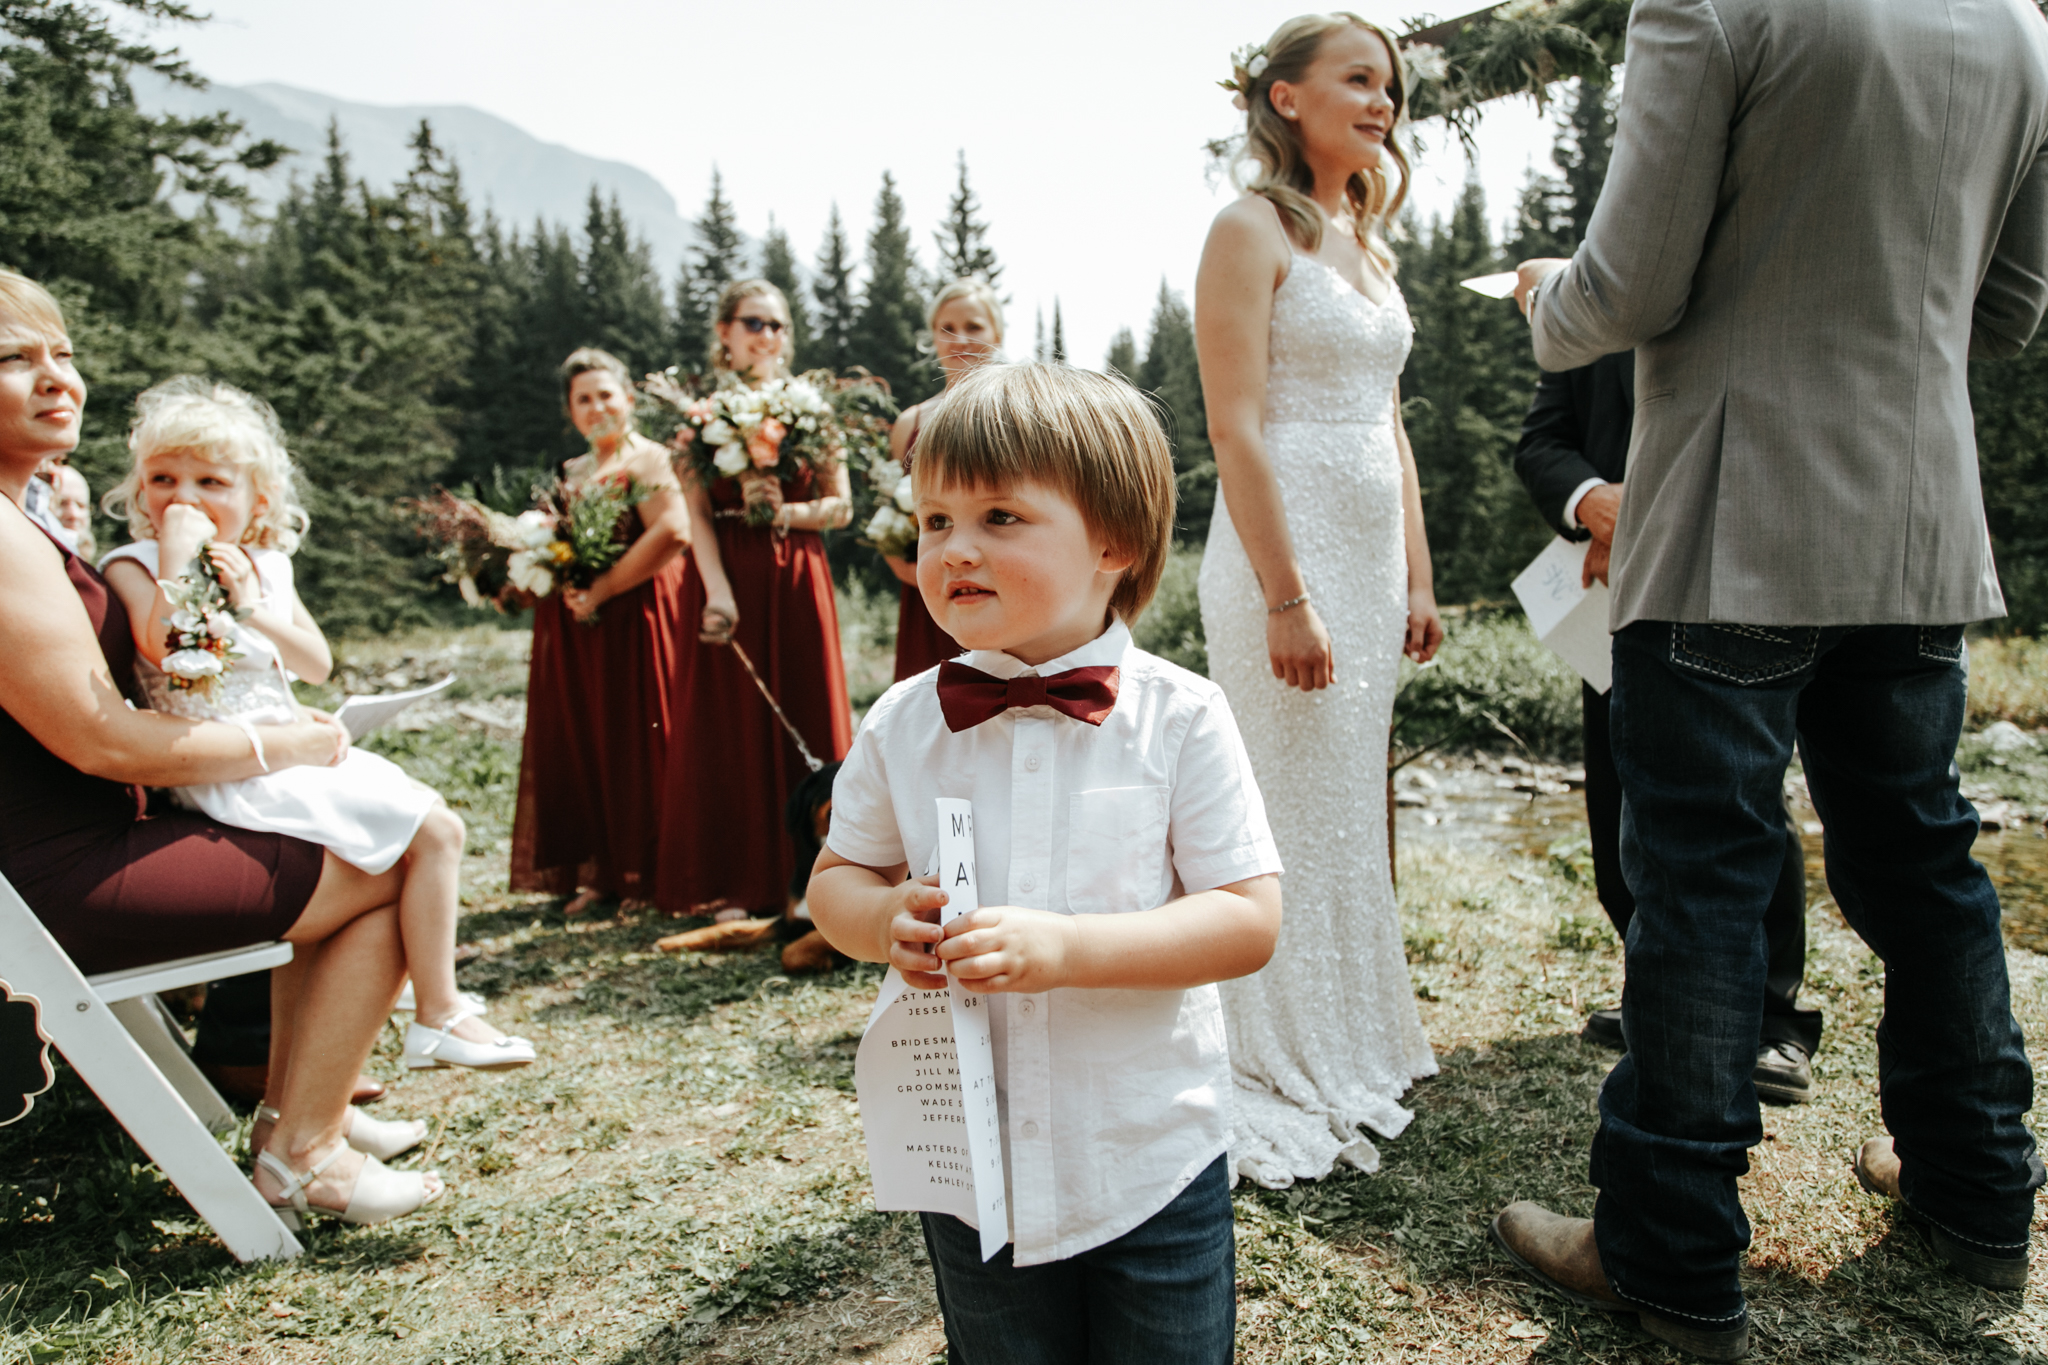 castle-mountain-wedding-photographer-love-and-be-loved-photography-lethbridge-pincher-creek-crowsnest-pass-yannick-rylee-photo-image-picture-72.jpg